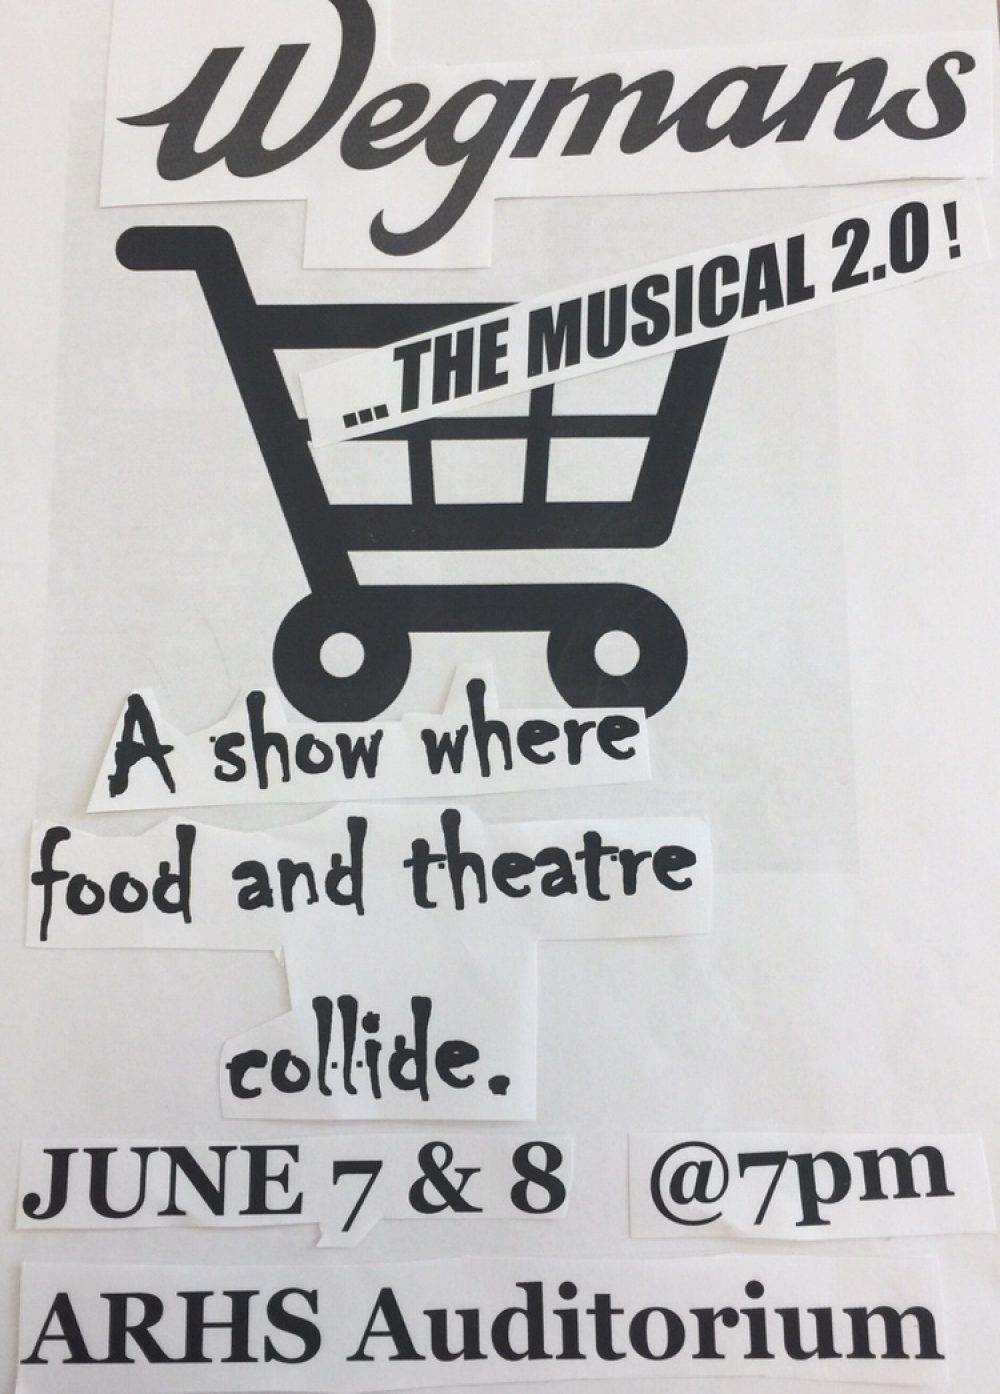 Wegmans...the Musical 2.0 at ARHS » The Northborough Guide